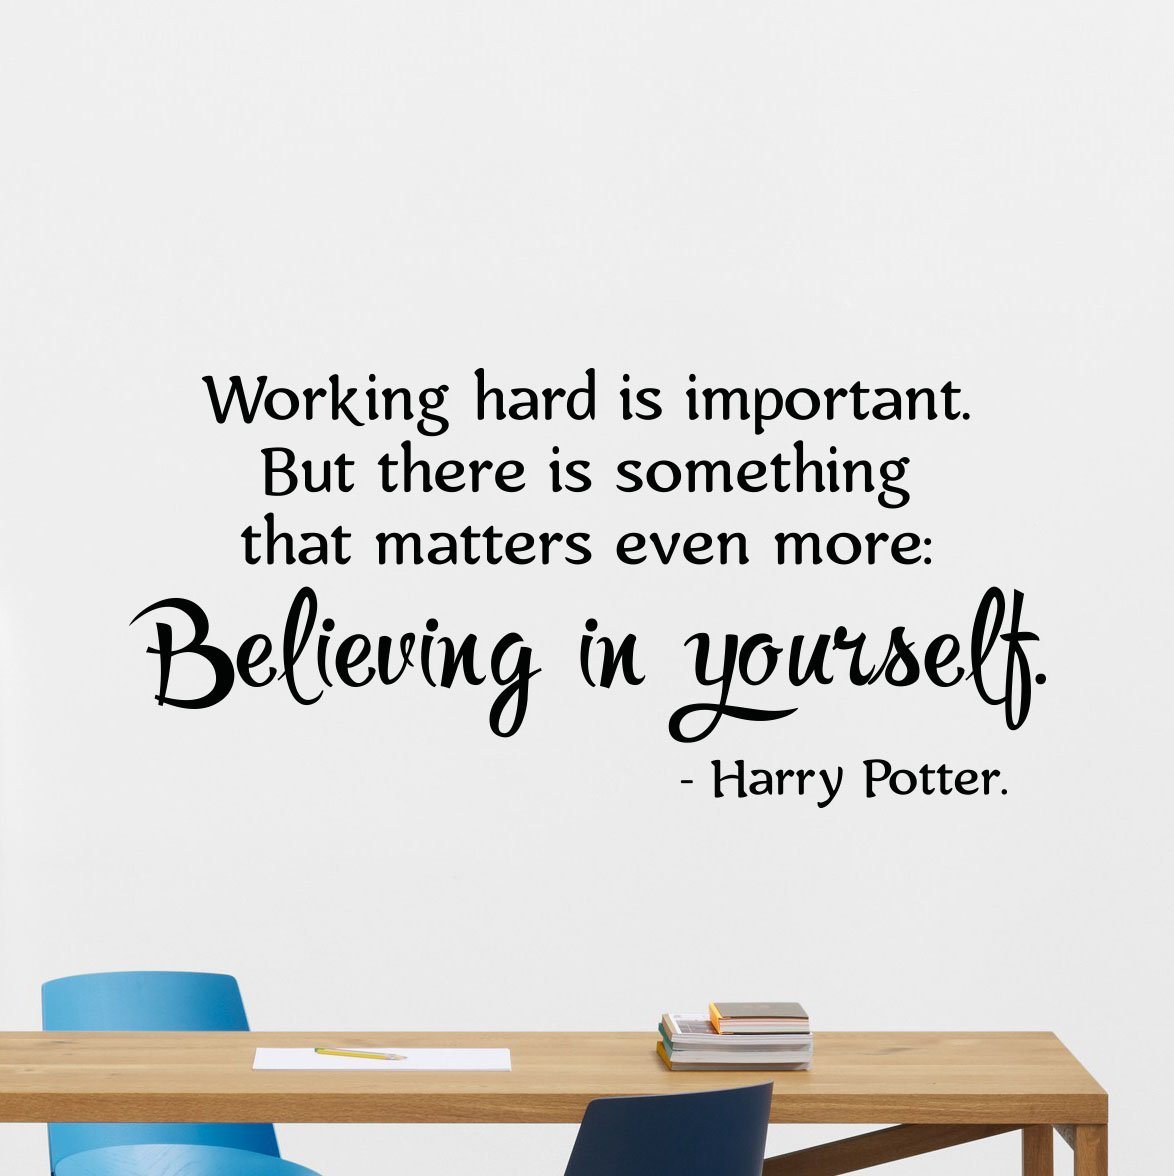 Julia Cruz Harry Potter Quotes Wall Decal Working Hard is Important Believing in Yourself HP Movie Vinyl Sticker Cartoons Wizard Boy Kids Wall Art ...